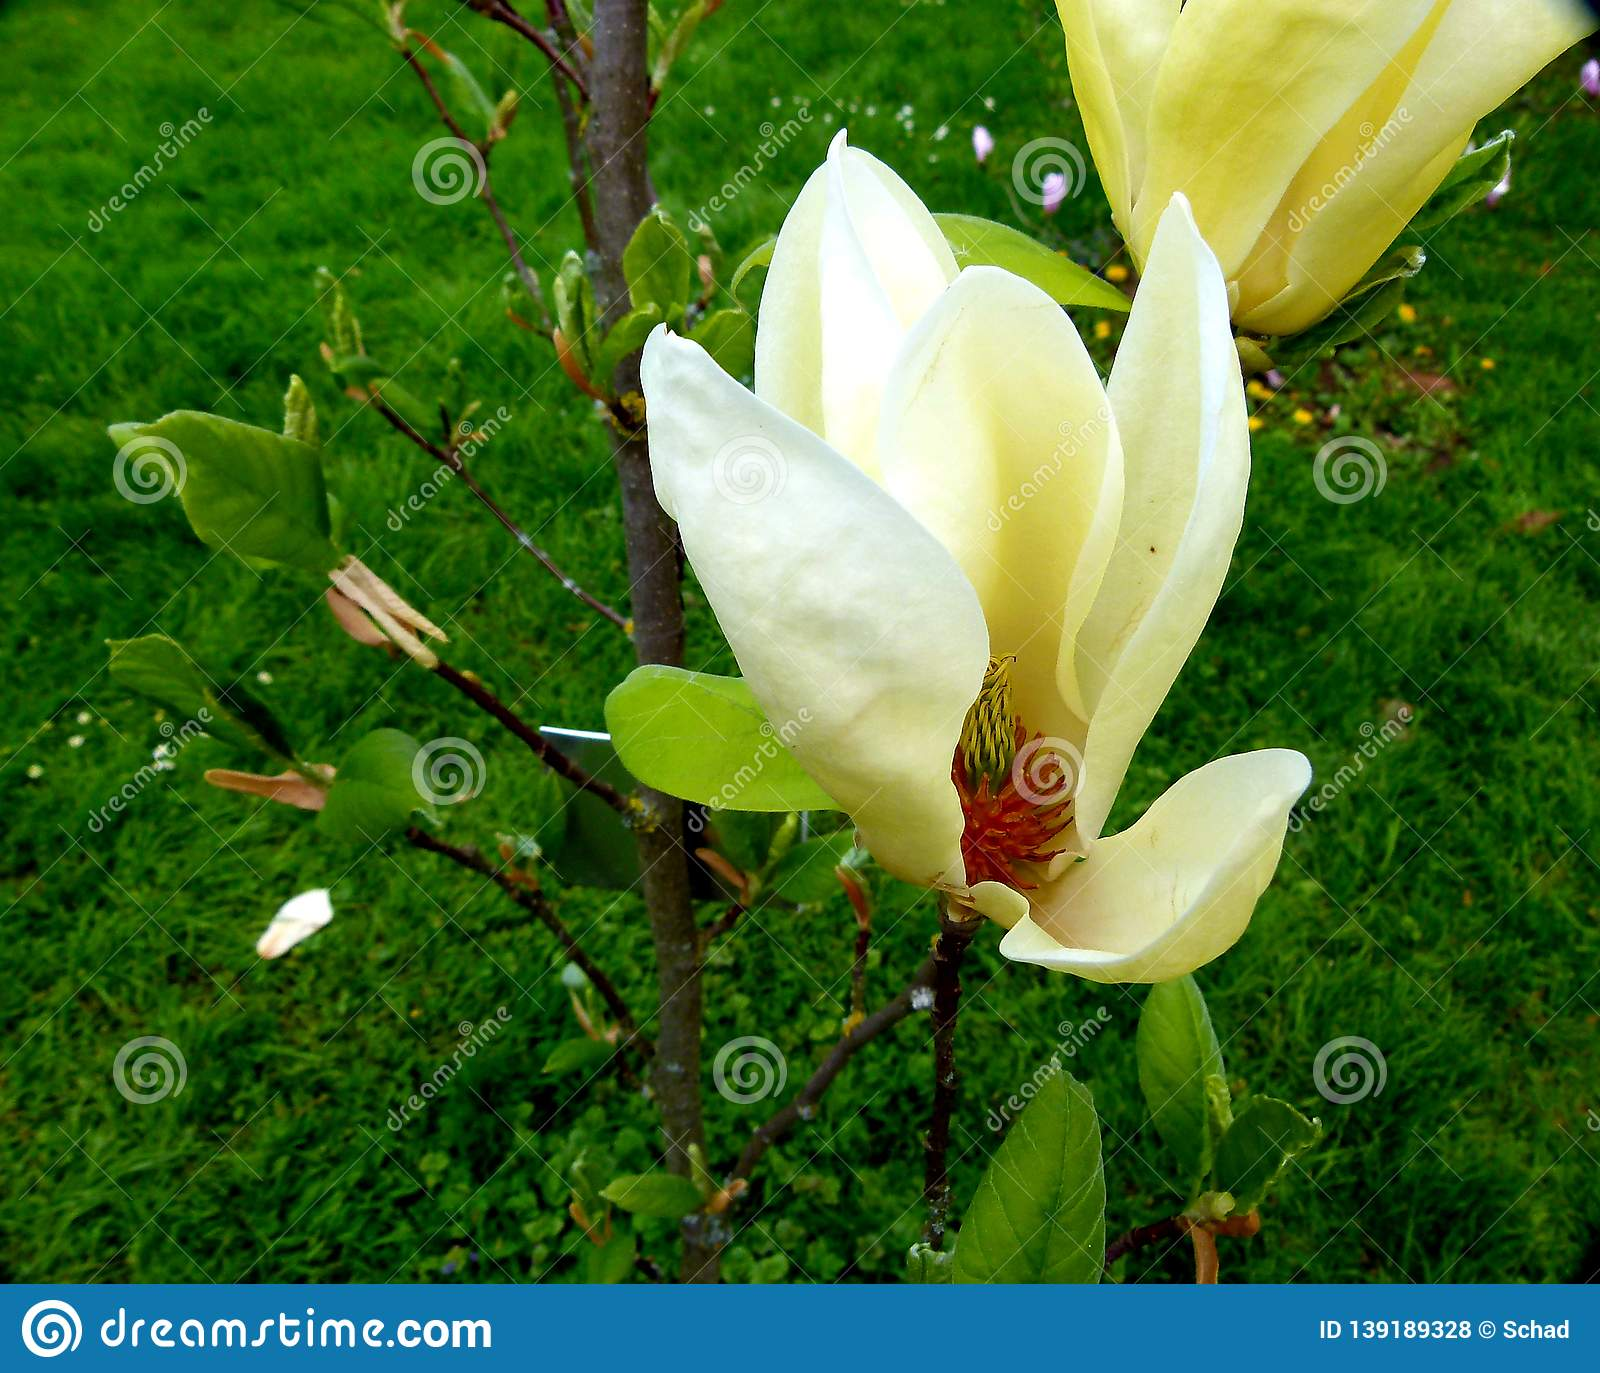 Flowering Of A Small Magnolia Tree With Grass As A Background Stock